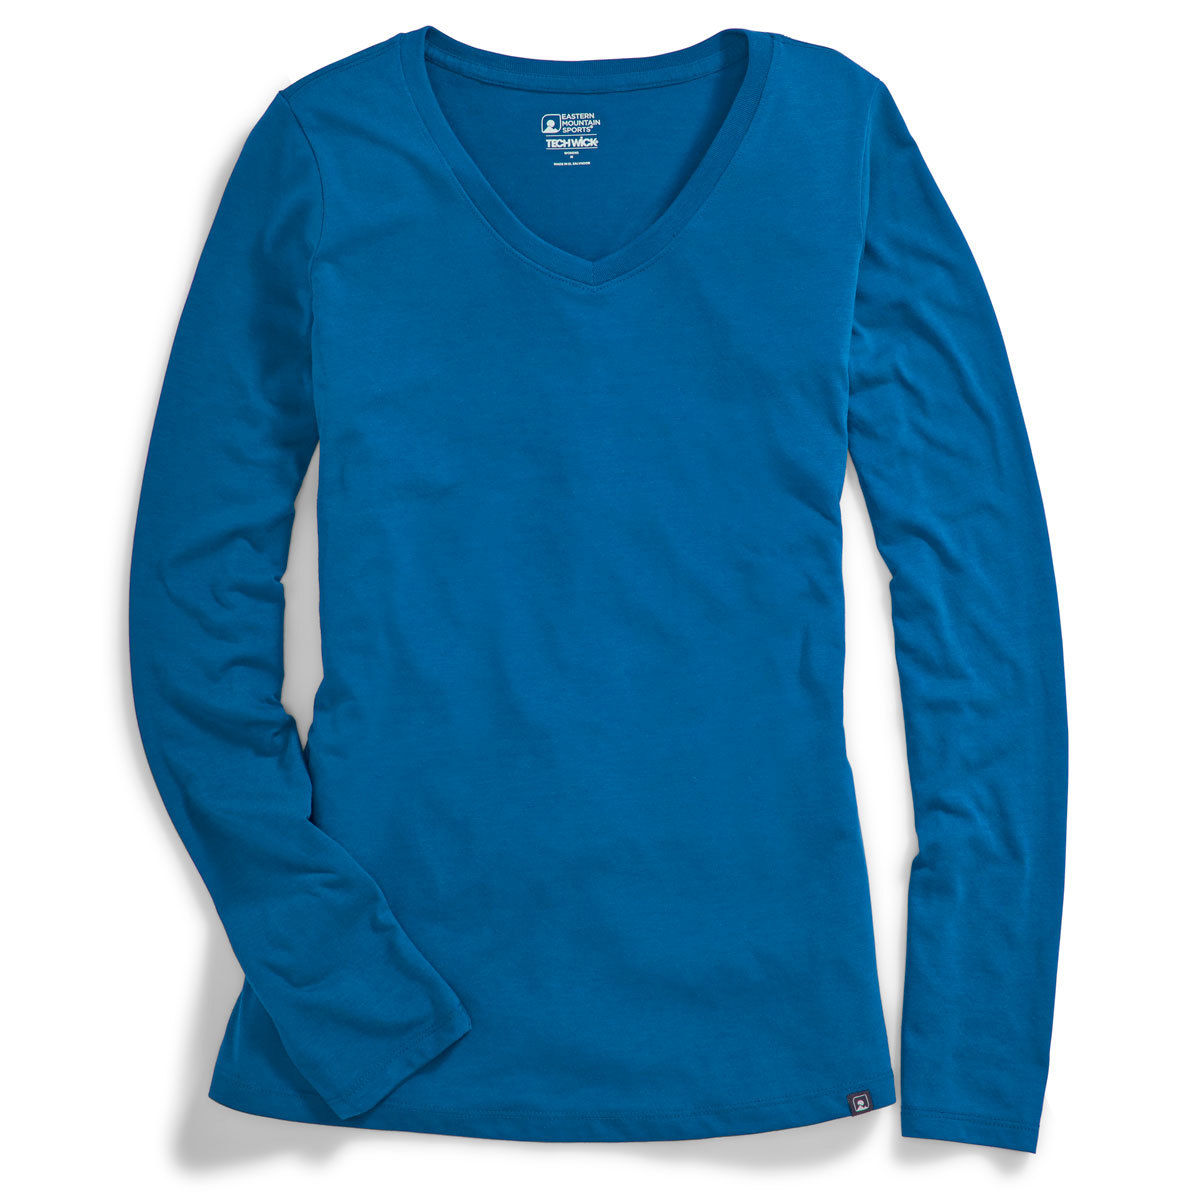 Emsa(R) Women's Techwicka(R) Vital V-Neck Long-Sleeve Tee - Blue, L